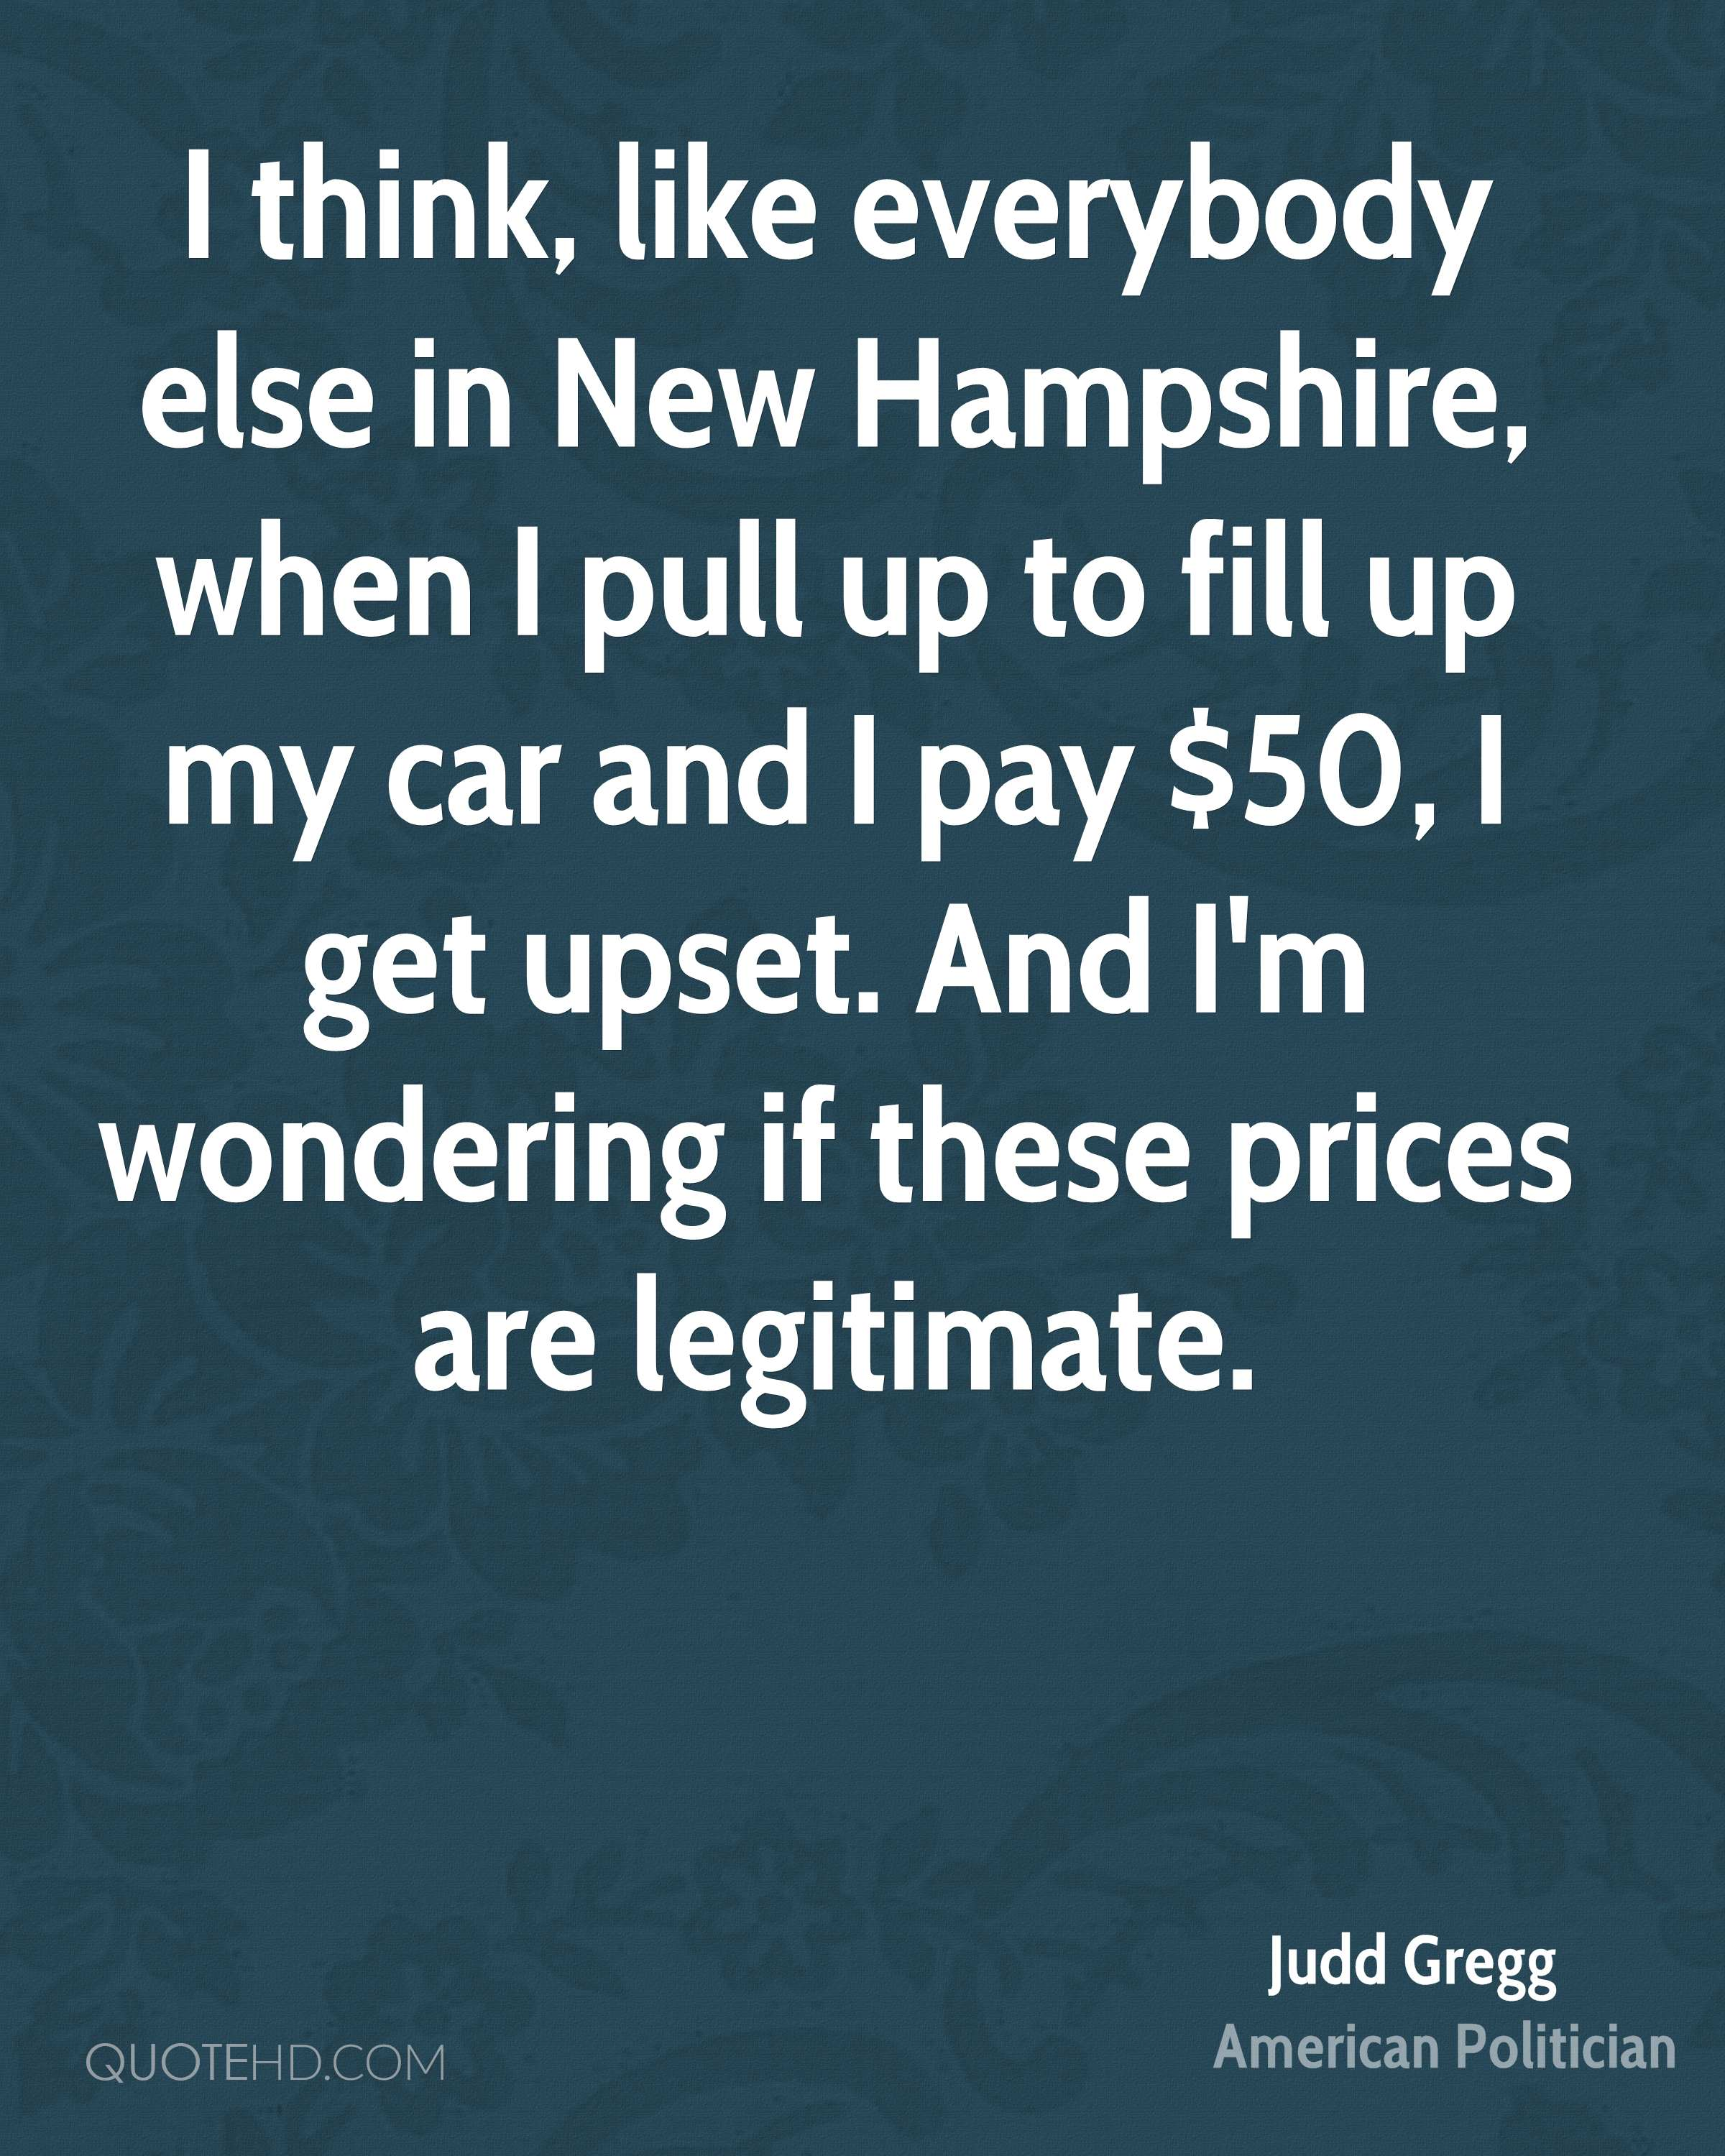 My New Car Quotes: Judd Gregg Car Quotes